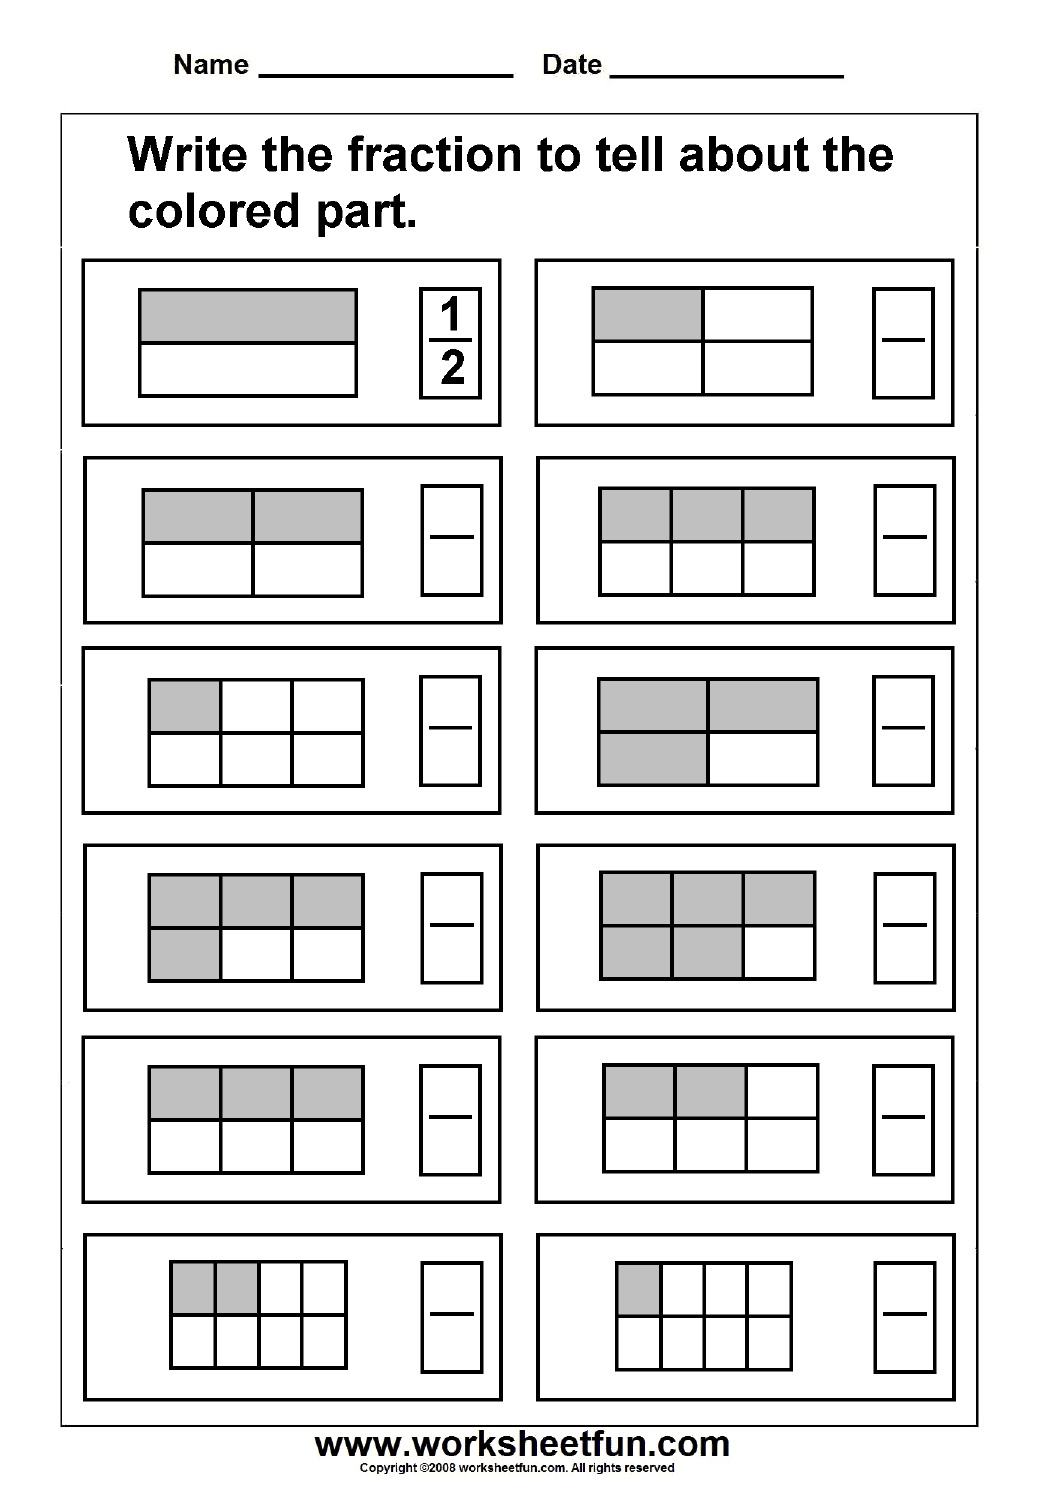 Math worksheets for all levels 2nd grade school work pinterest math worksheets for all levels robcynllc Images